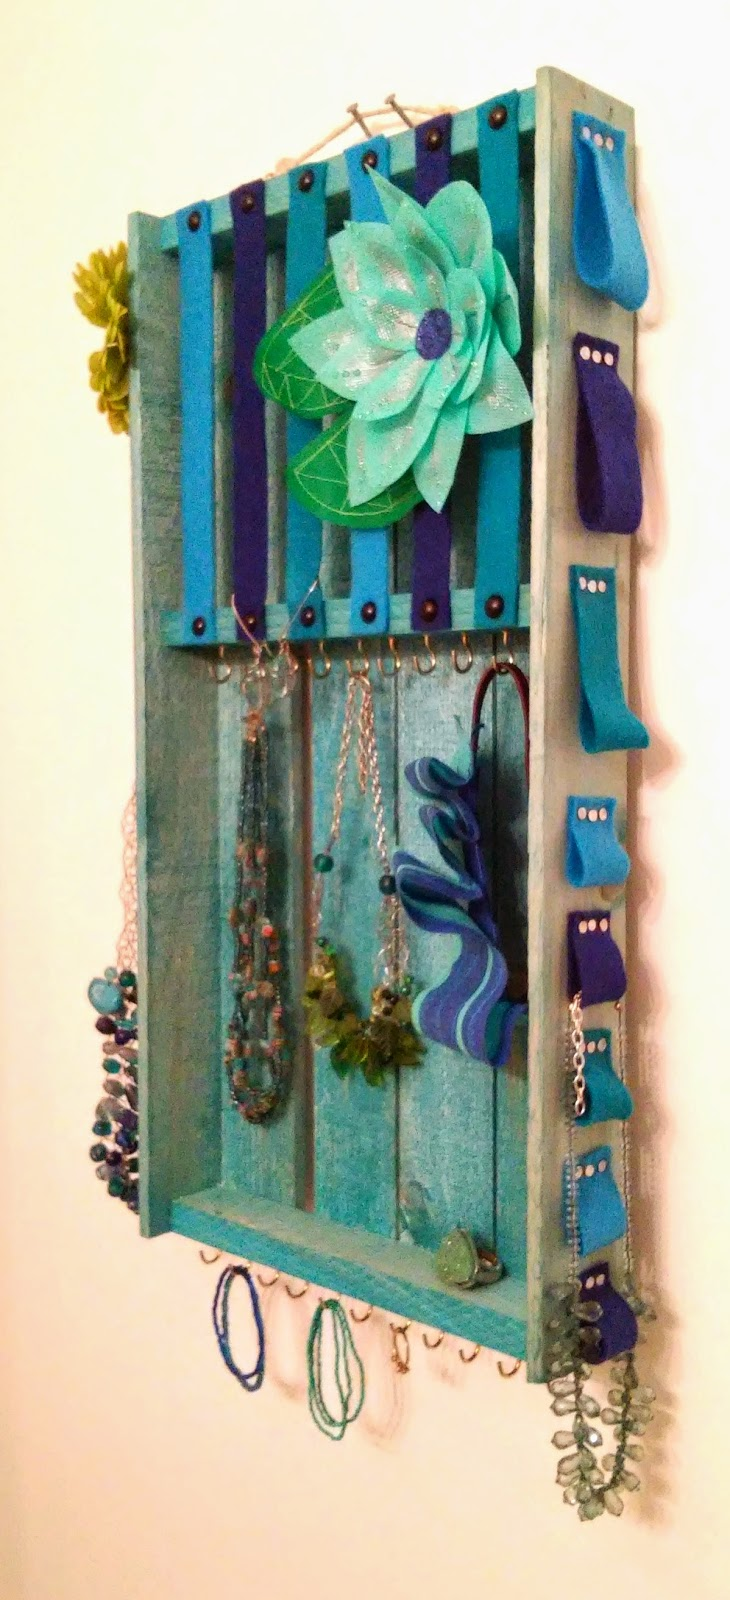 HOME DIY Wood Pallet Jewelry Hair Accessory Organizer